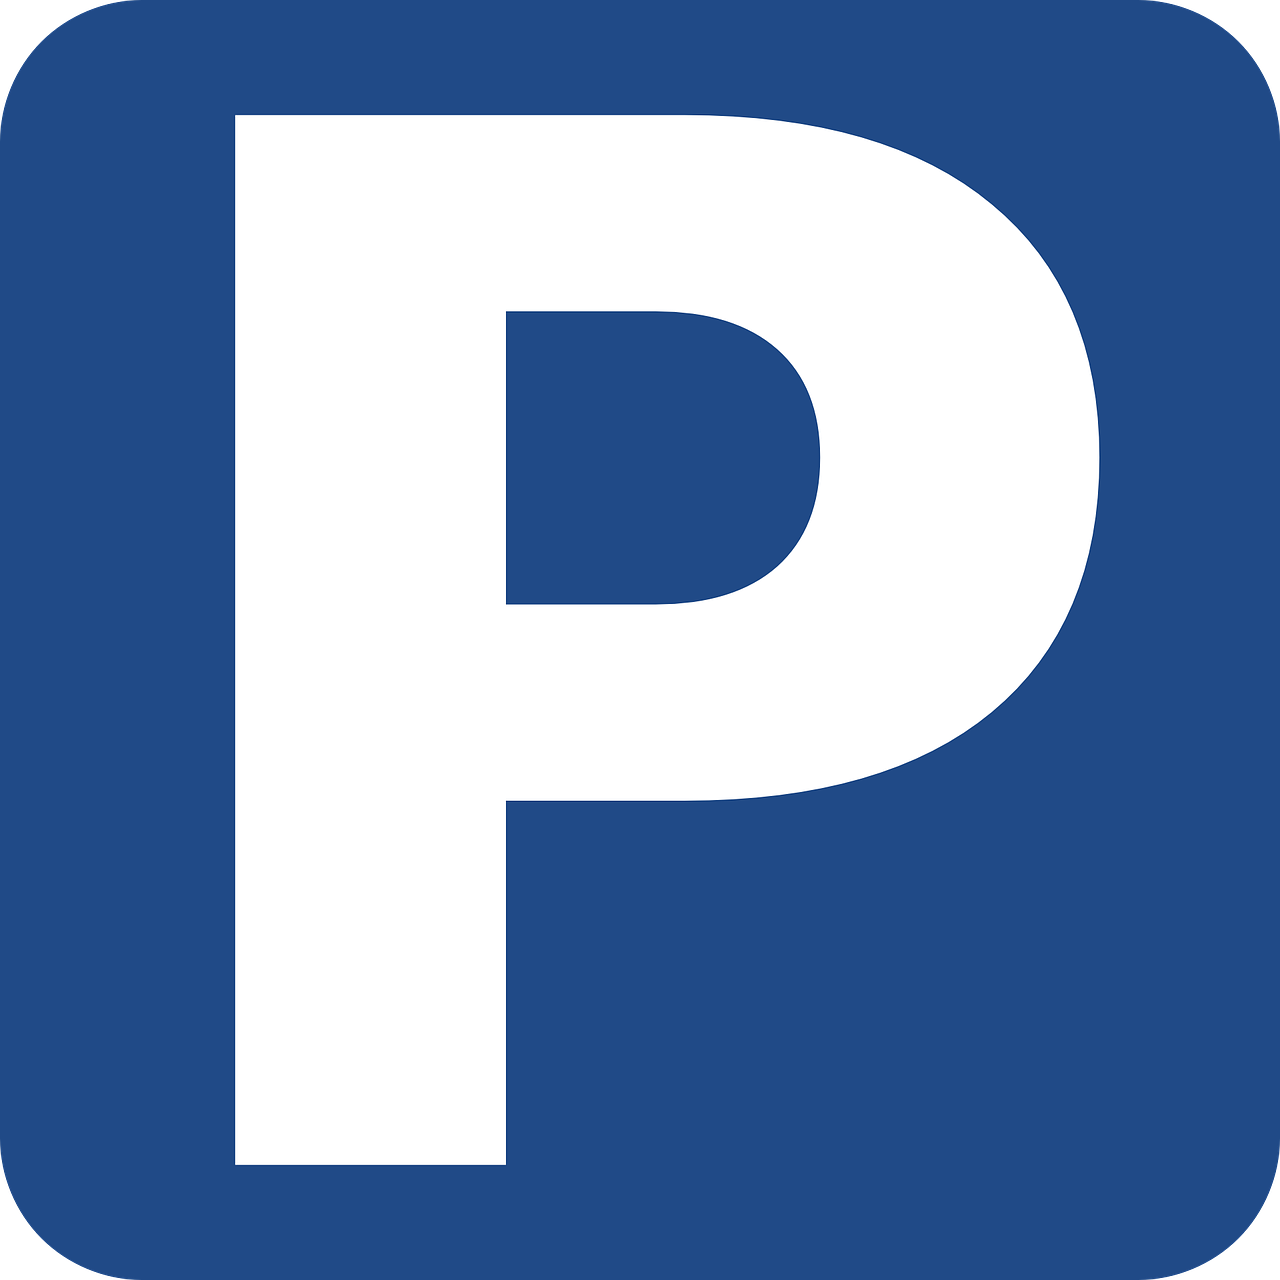 traffic,signs,parking,lot,park,blue,road,street,car,available,free vector graphics,free pictures, free photos, free images, royalty free, free illustrations, public domain